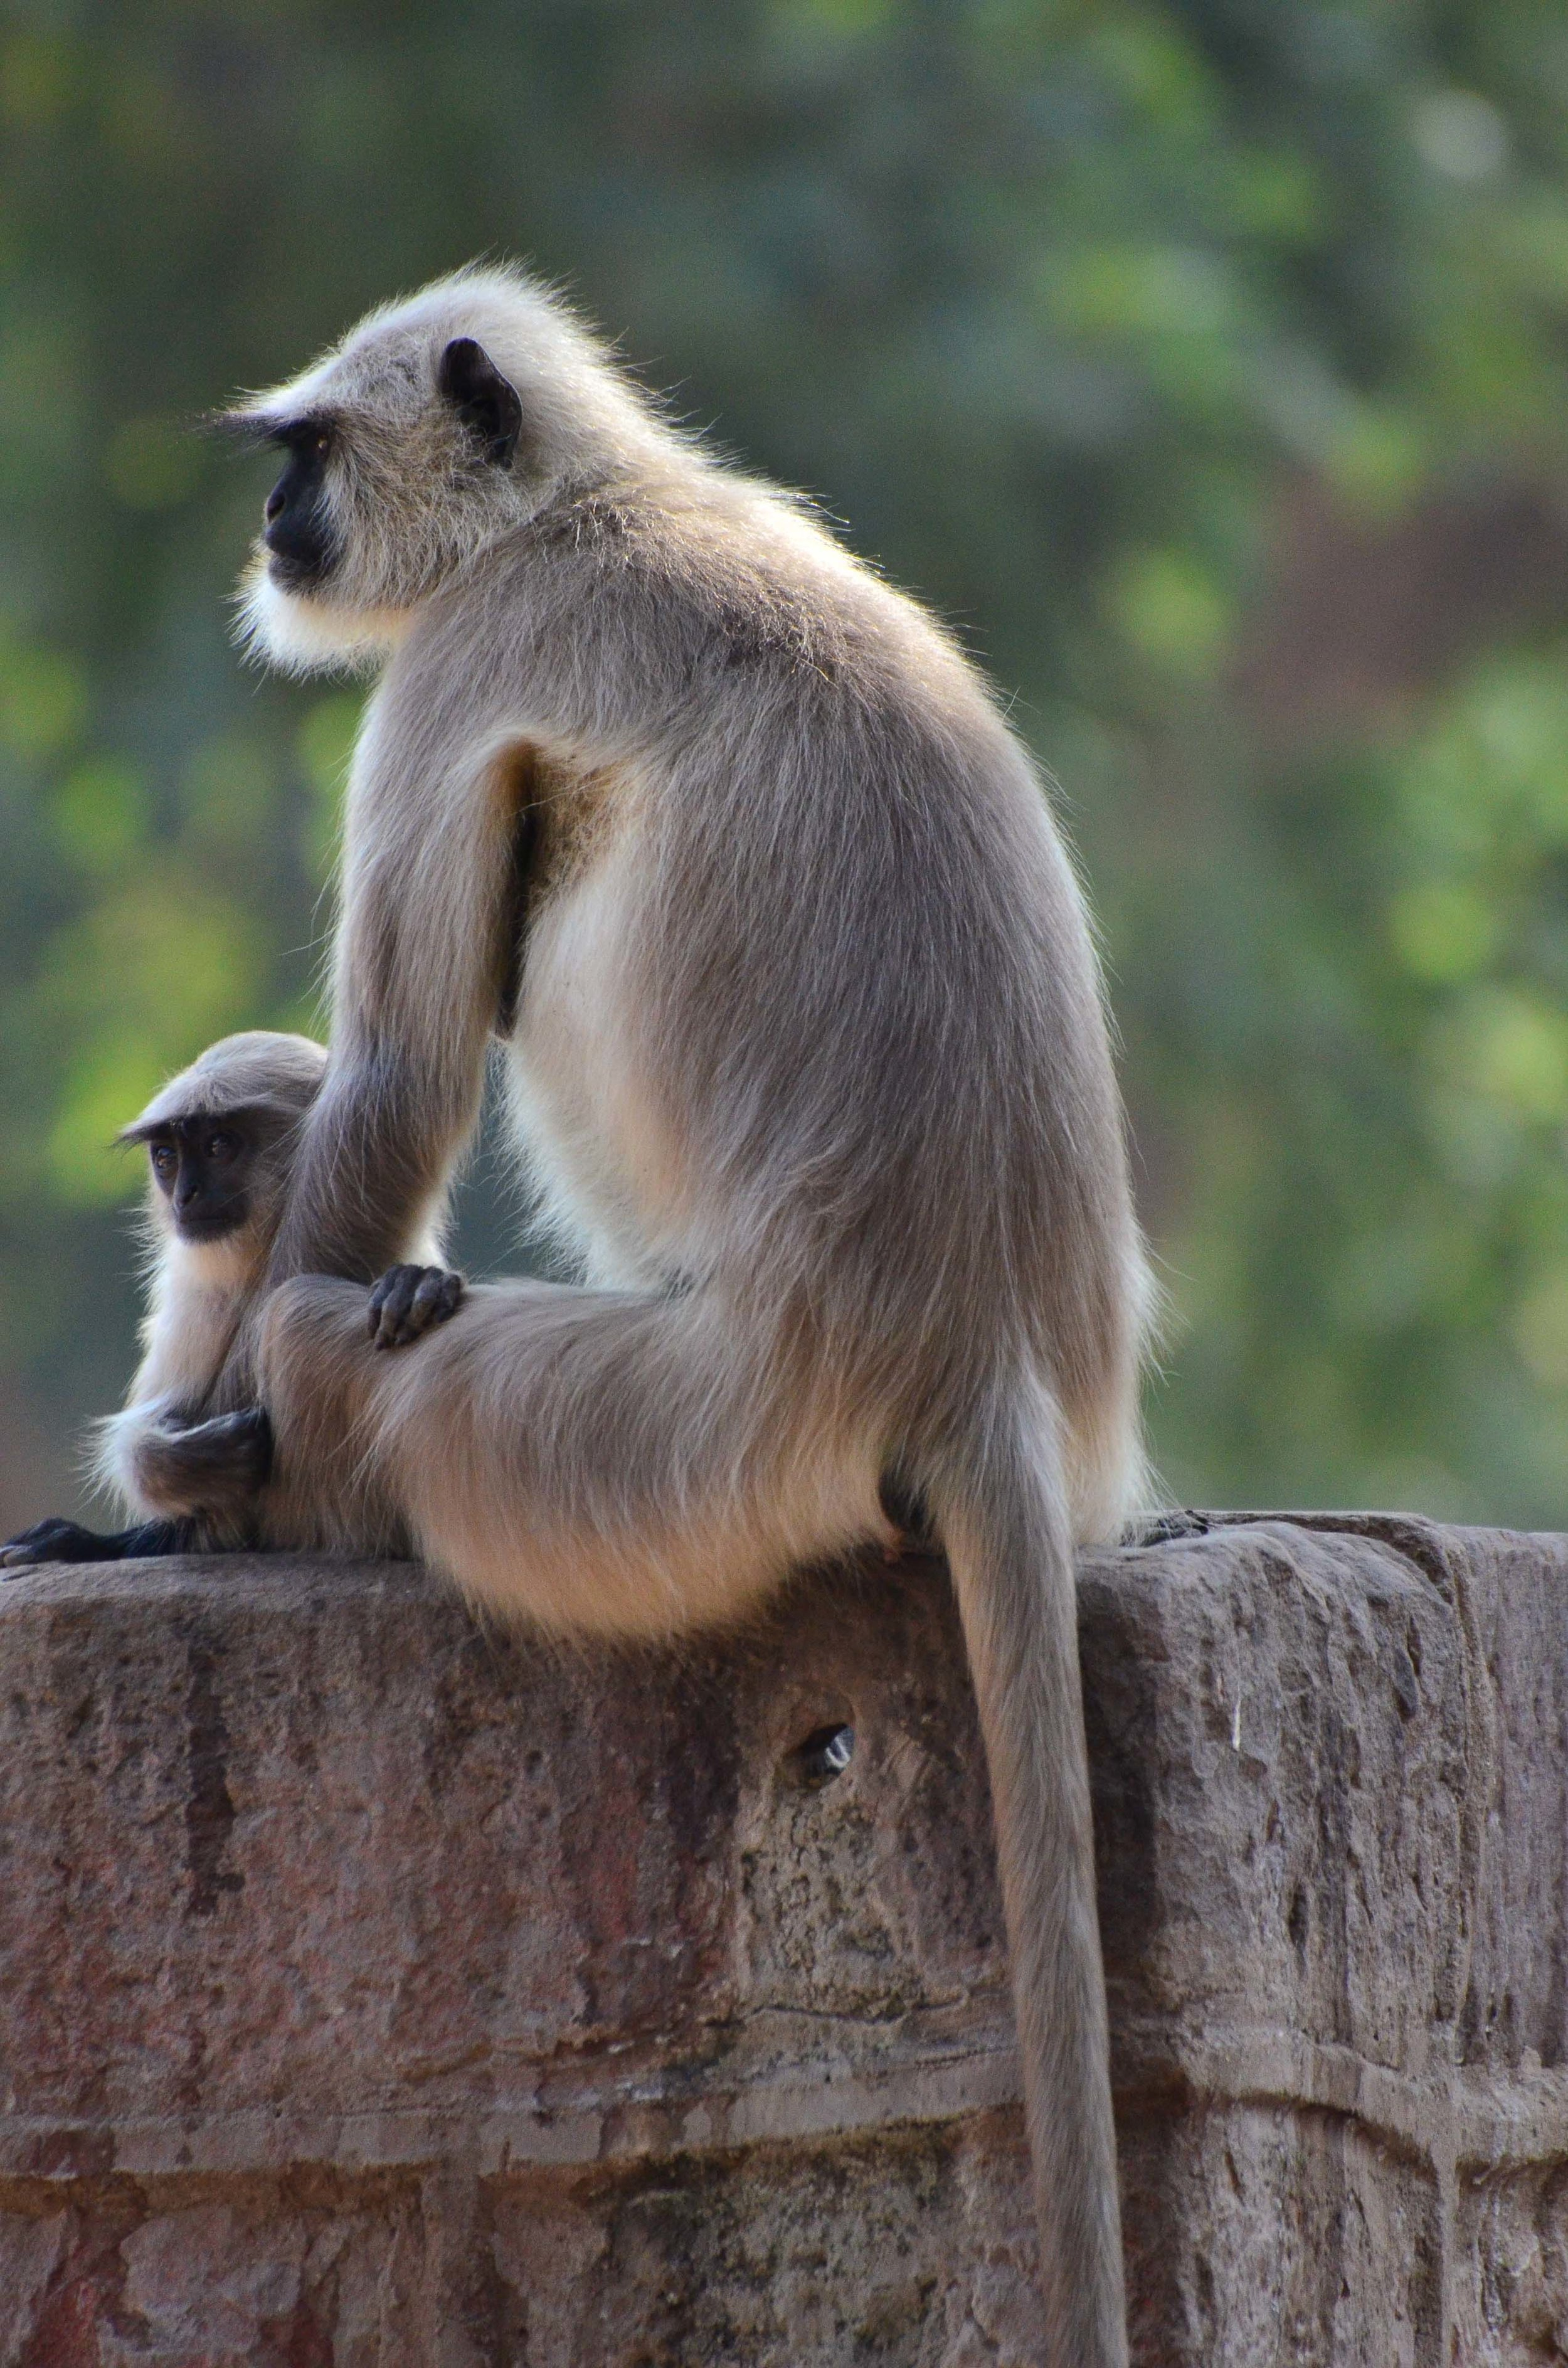 Mom and Baby. Ranthambore National Park, India 2012